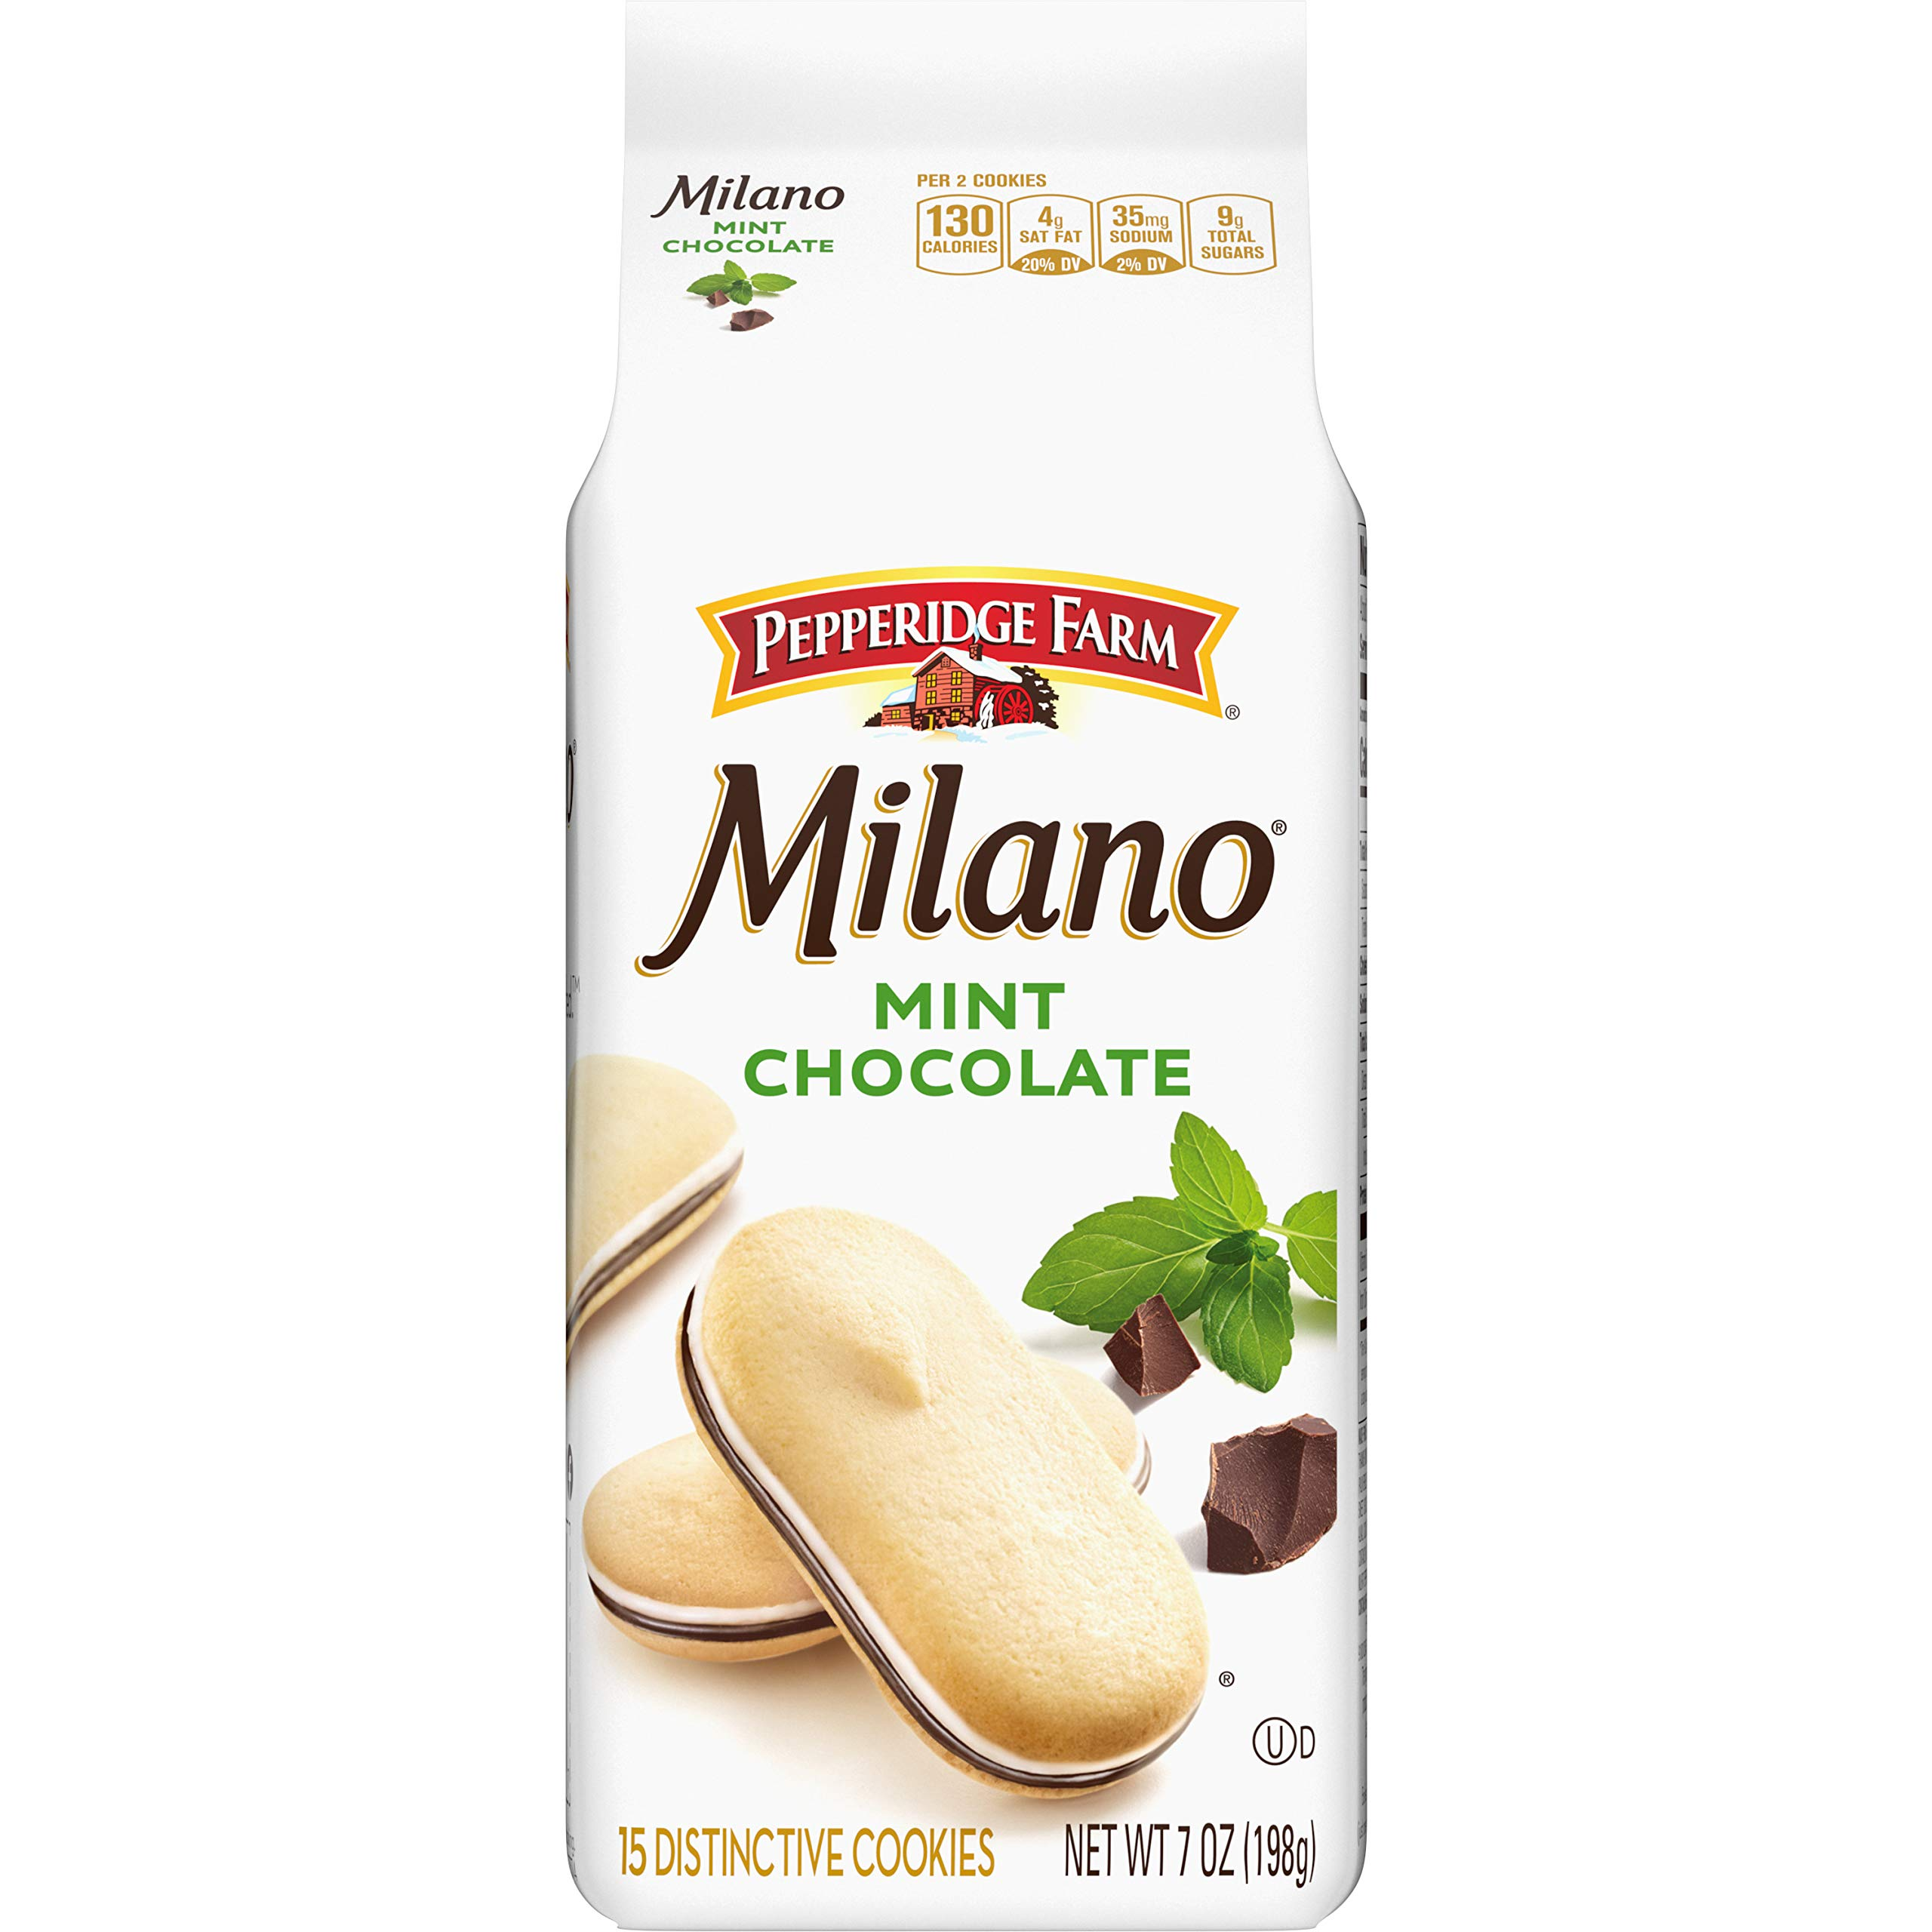 Pepperidge Farm Milano Mint Chocolate Cookies, 7 Ounce Bag